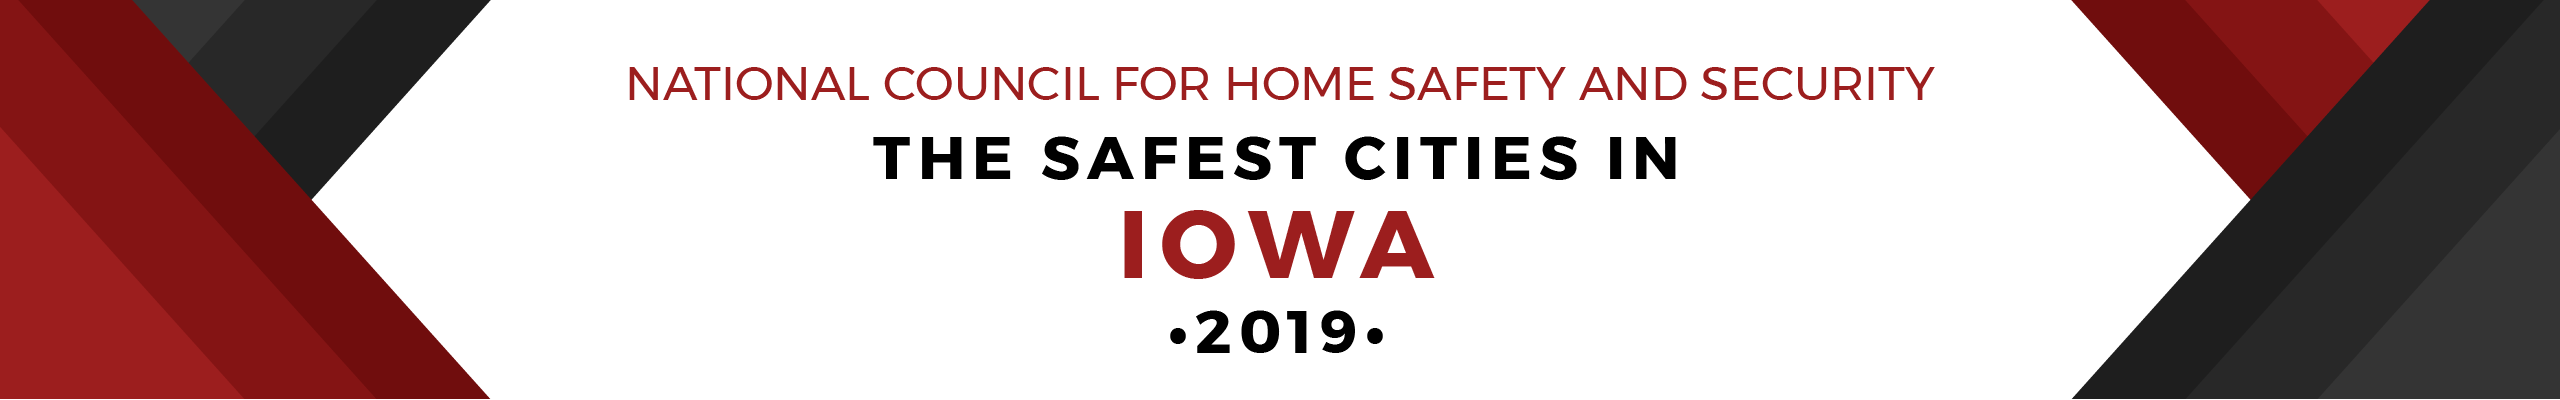 Safest Cities Iowa - header